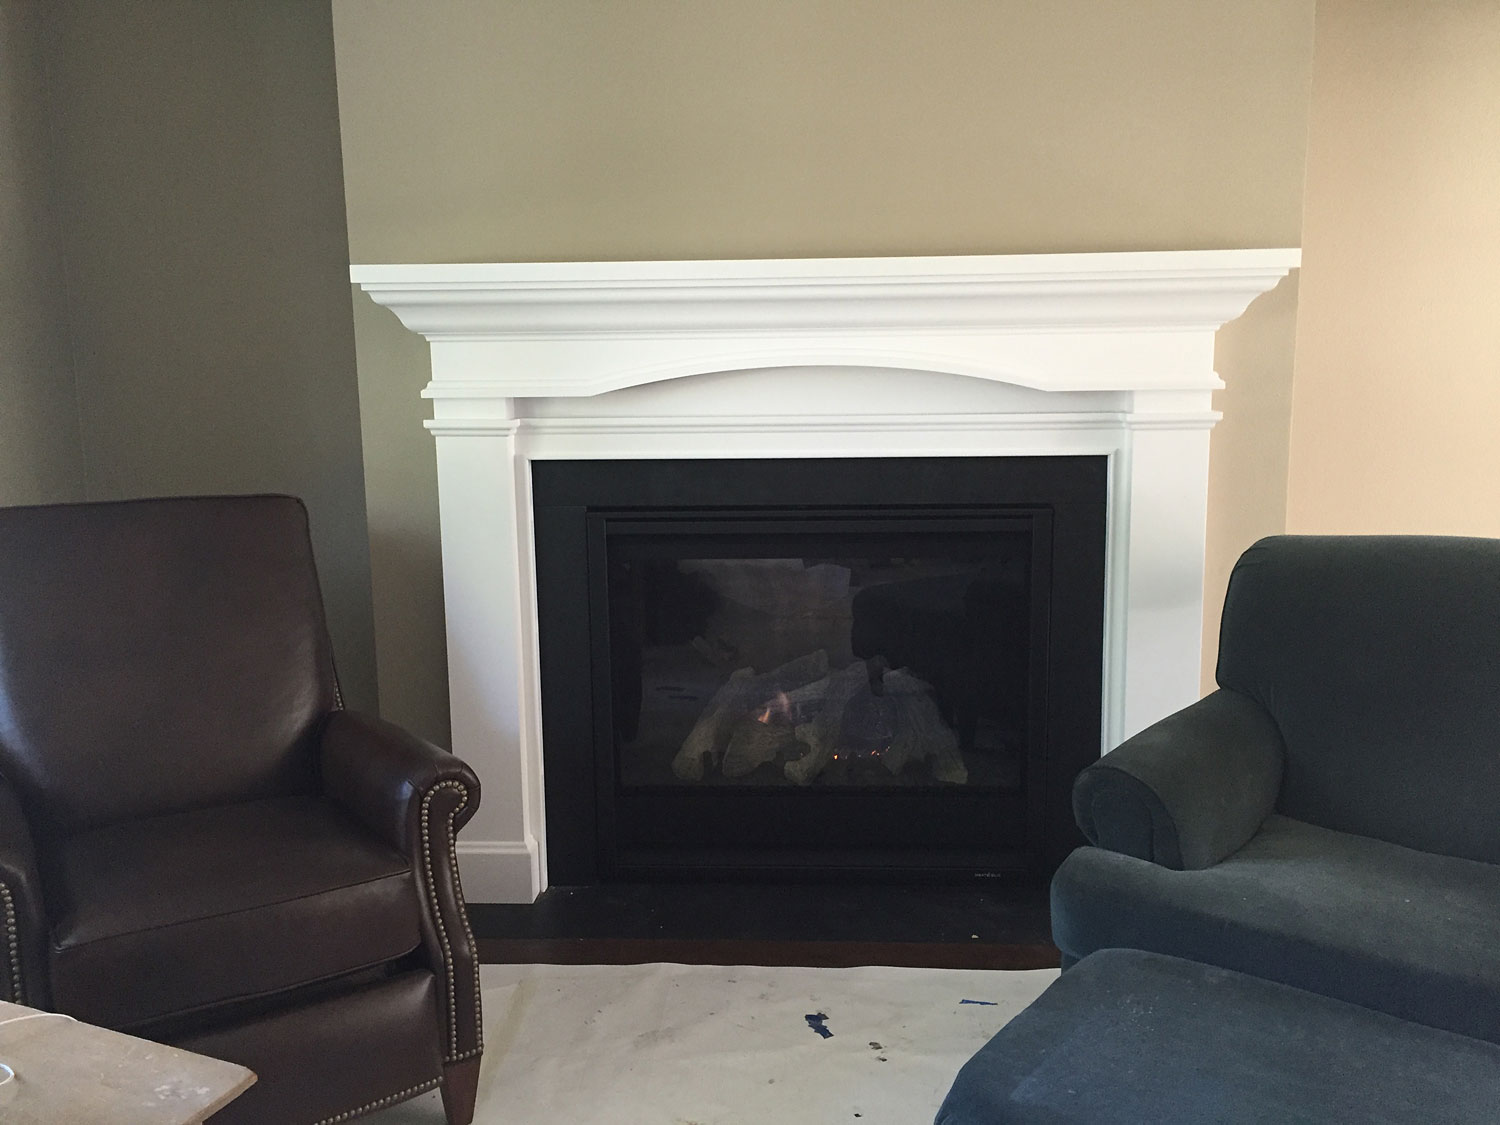 Novus Fireplace Fire Place Inserts Brandt Heating And Air Conditioning Iowa City